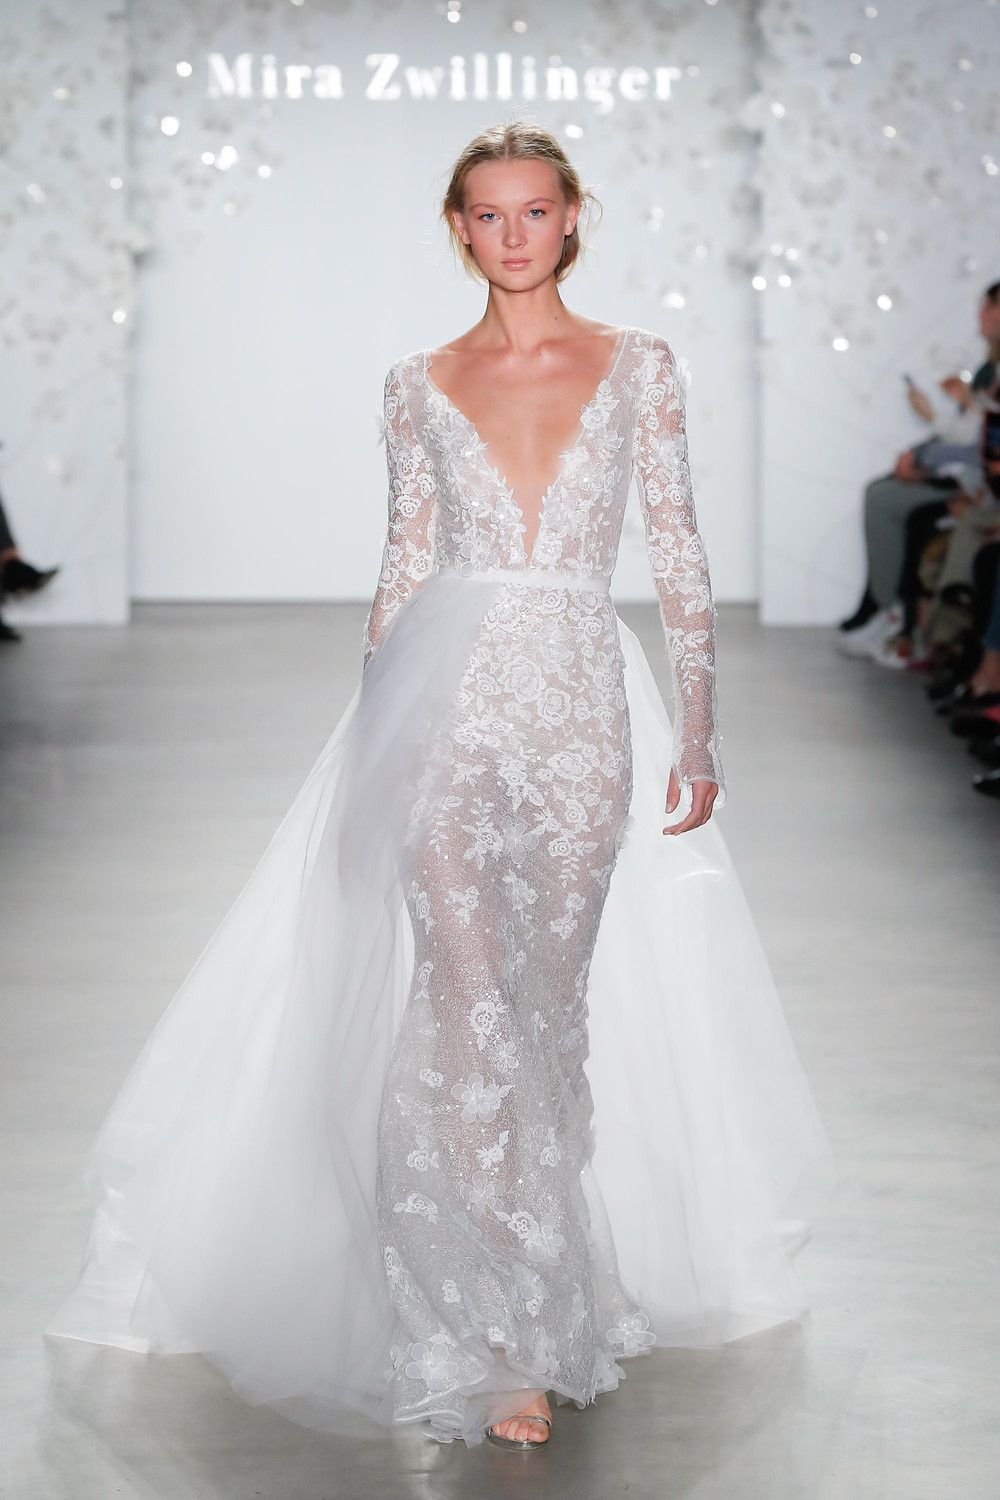 A Mira Zwillinger lace and mesh mermaid fit and flare wedding dress with long sleeves and a low v neckline